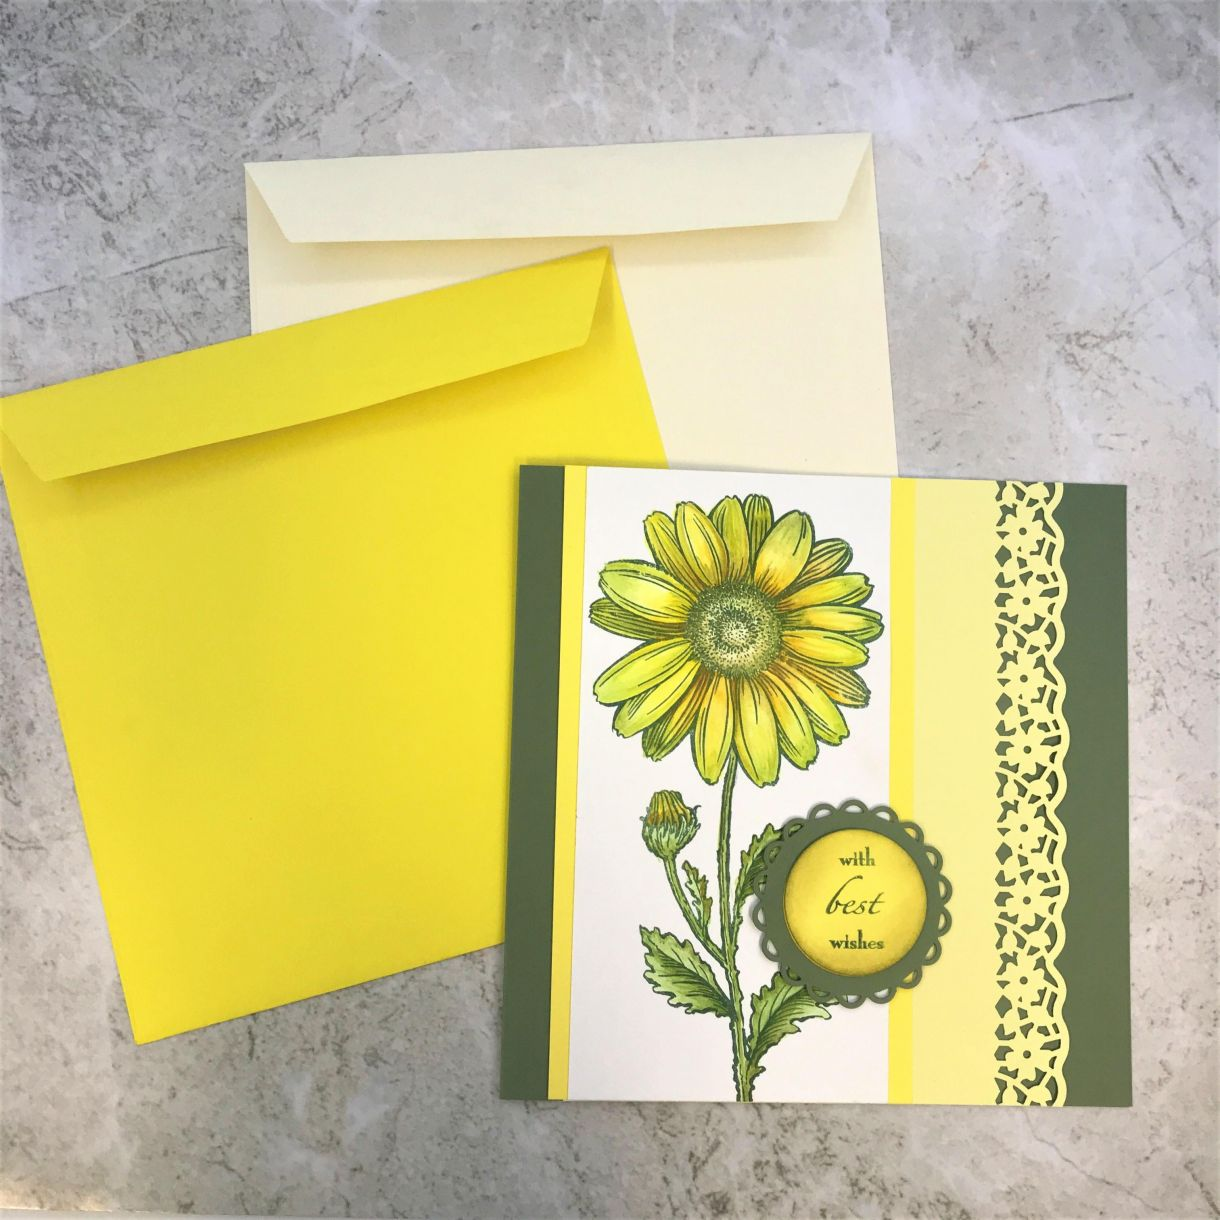 How To Make A Large Yellow Daisy Card 1